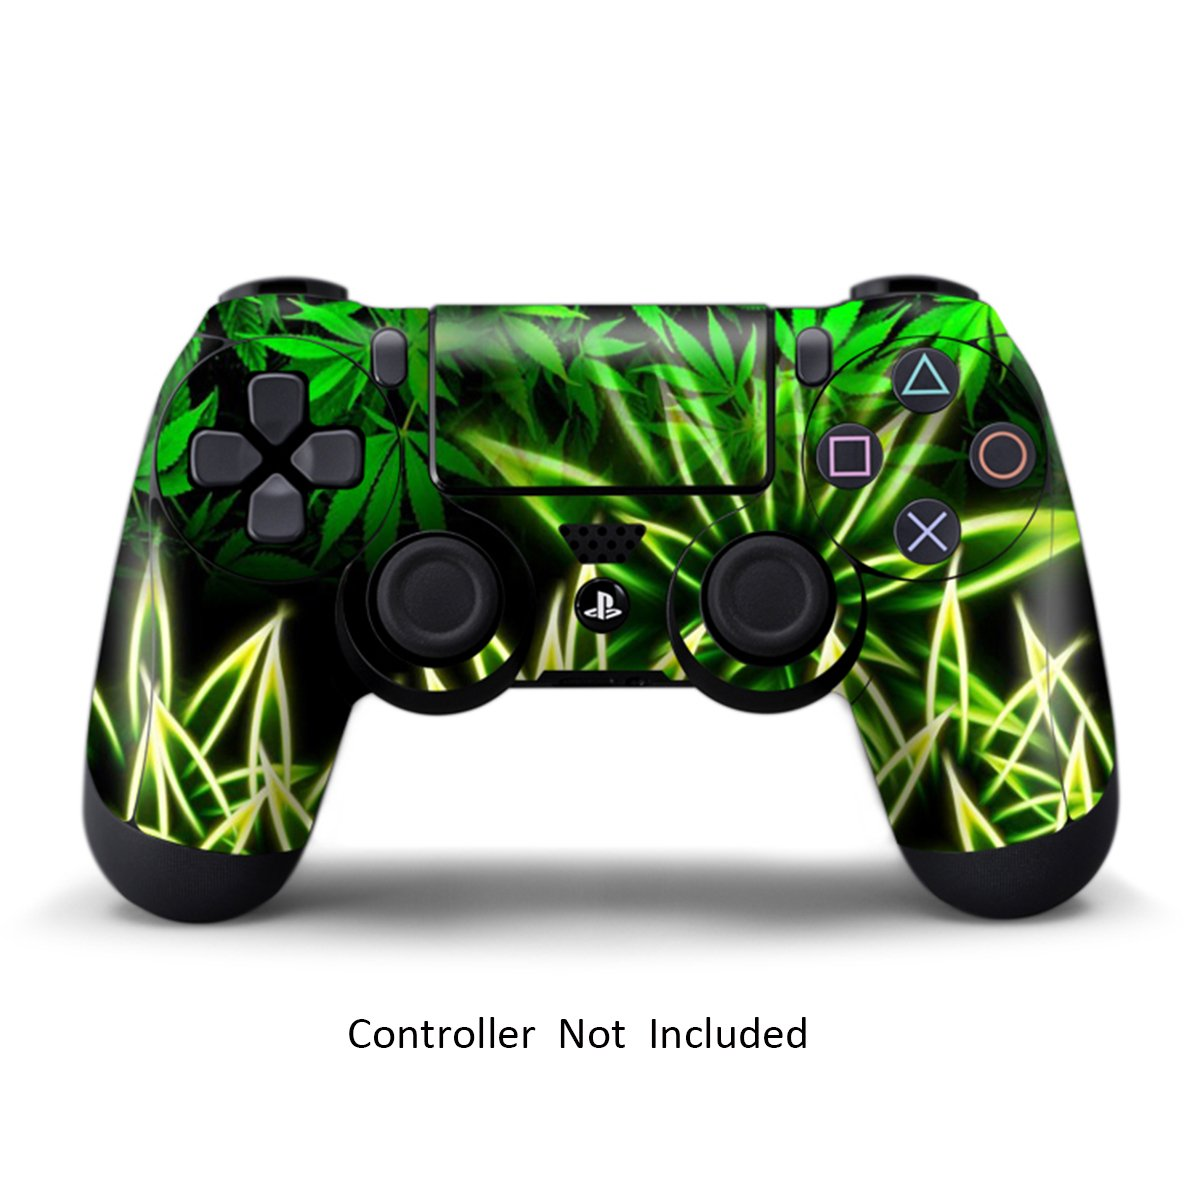 Skins for PS4 Controller - Stickers for Playstation 4 Games - Decals Cover for Sony Play Station 4 PS4 Pro Accessories PS4 Remote Wireless Dualshock 4 Skin - Weeds Black